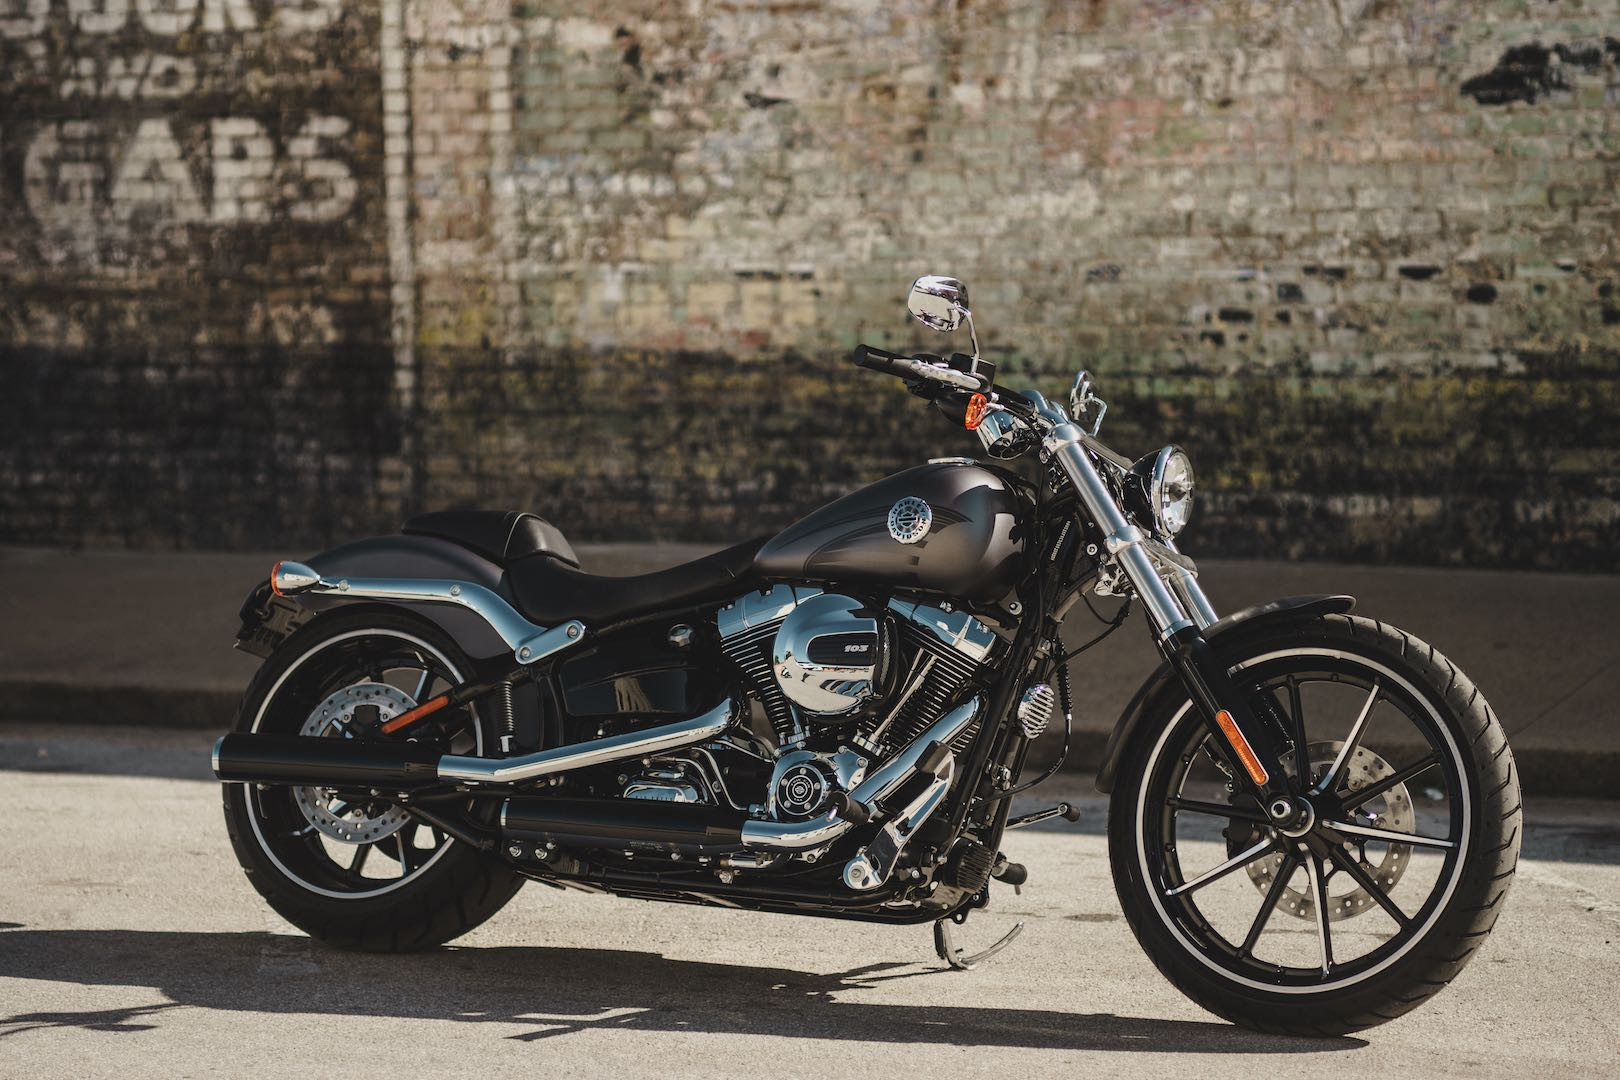 2017 Harley-Davidson Softail Breakout Buyer's Guide | Specs & Price